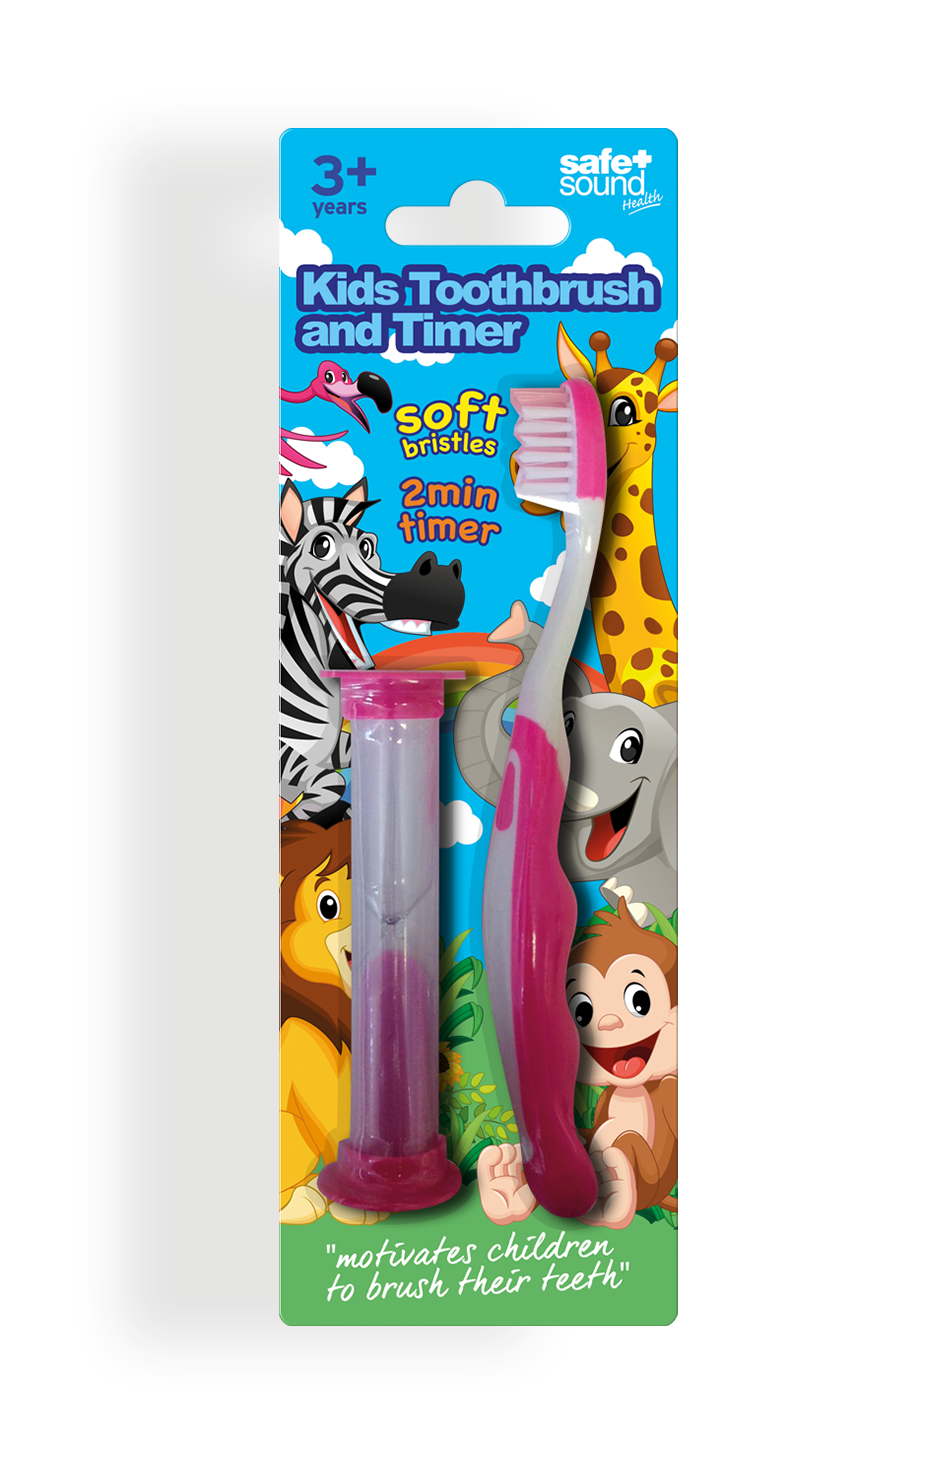 Safe and Sound Health Kid's Toothbrush with Timer